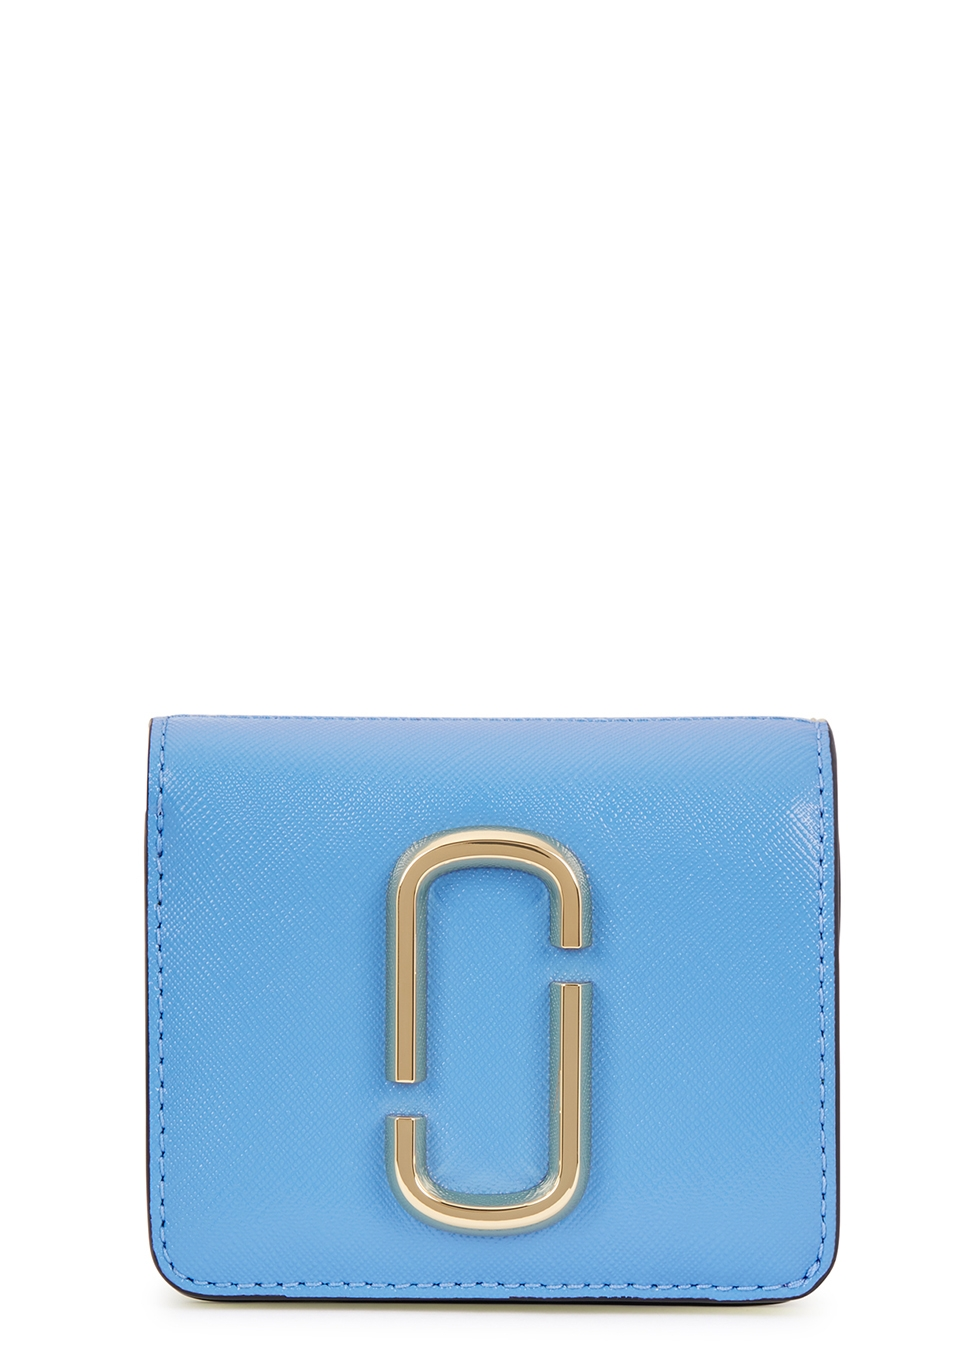 MARC JACOBS   Marc Jacobs Snapshot Blue, Caramel And Yellow Mini Leather Wallet   Goxip